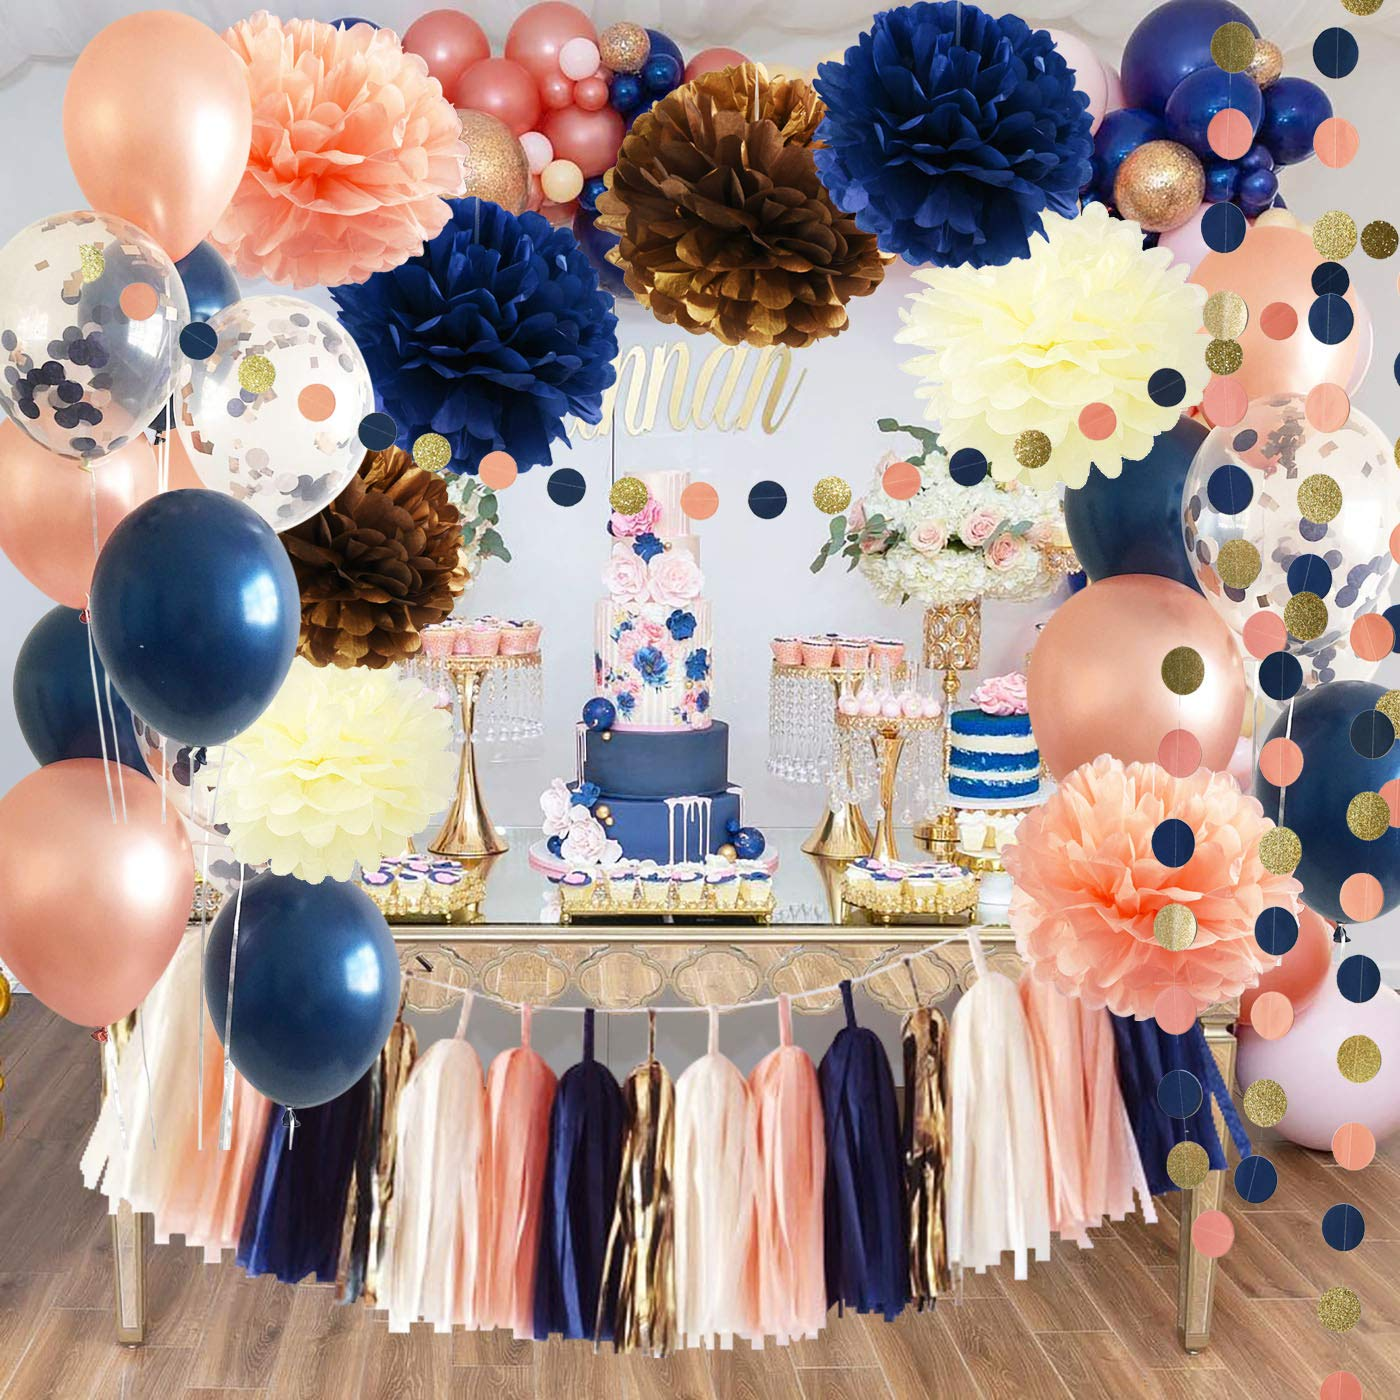 Bridal Shower Decorations Navy Rose Gold Balloons Qian's Party Navy Peach Wedding Decorations/Navy Peach Bachelorette Party Decorations 30th/40th/50th Birthday Party Decorations/Baby Shower Decor by Qian's Party